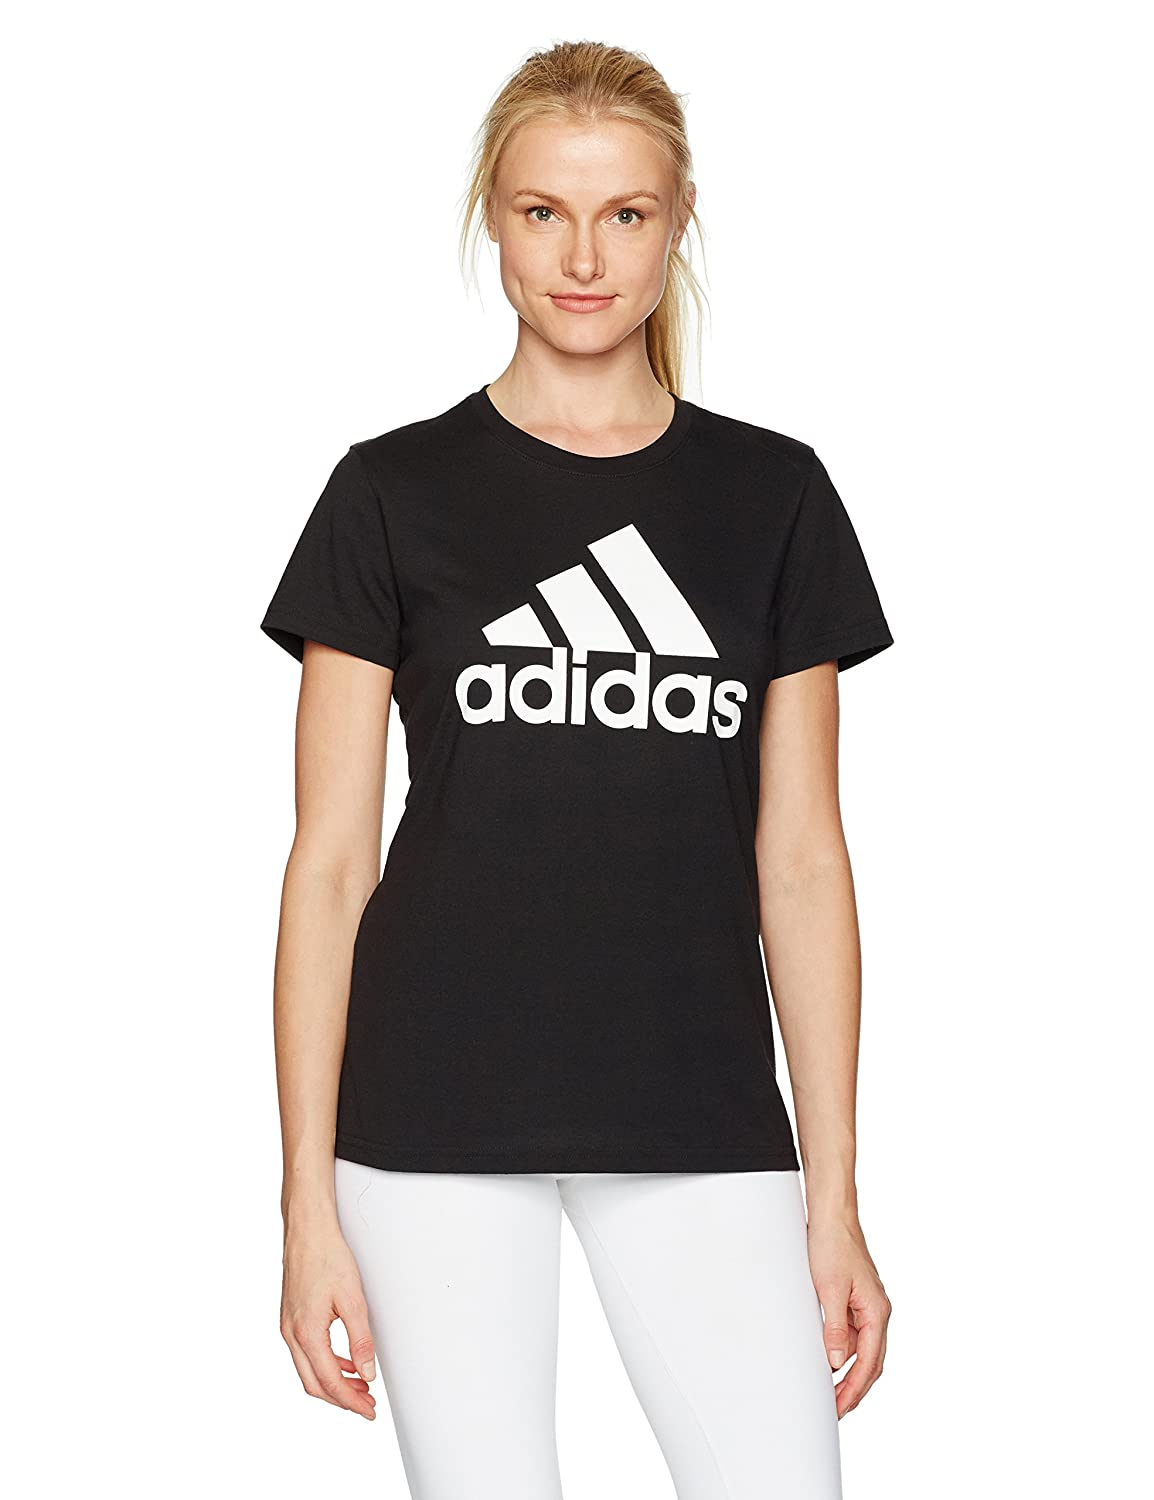 adidas Women's Badge of Sport Logo Tee